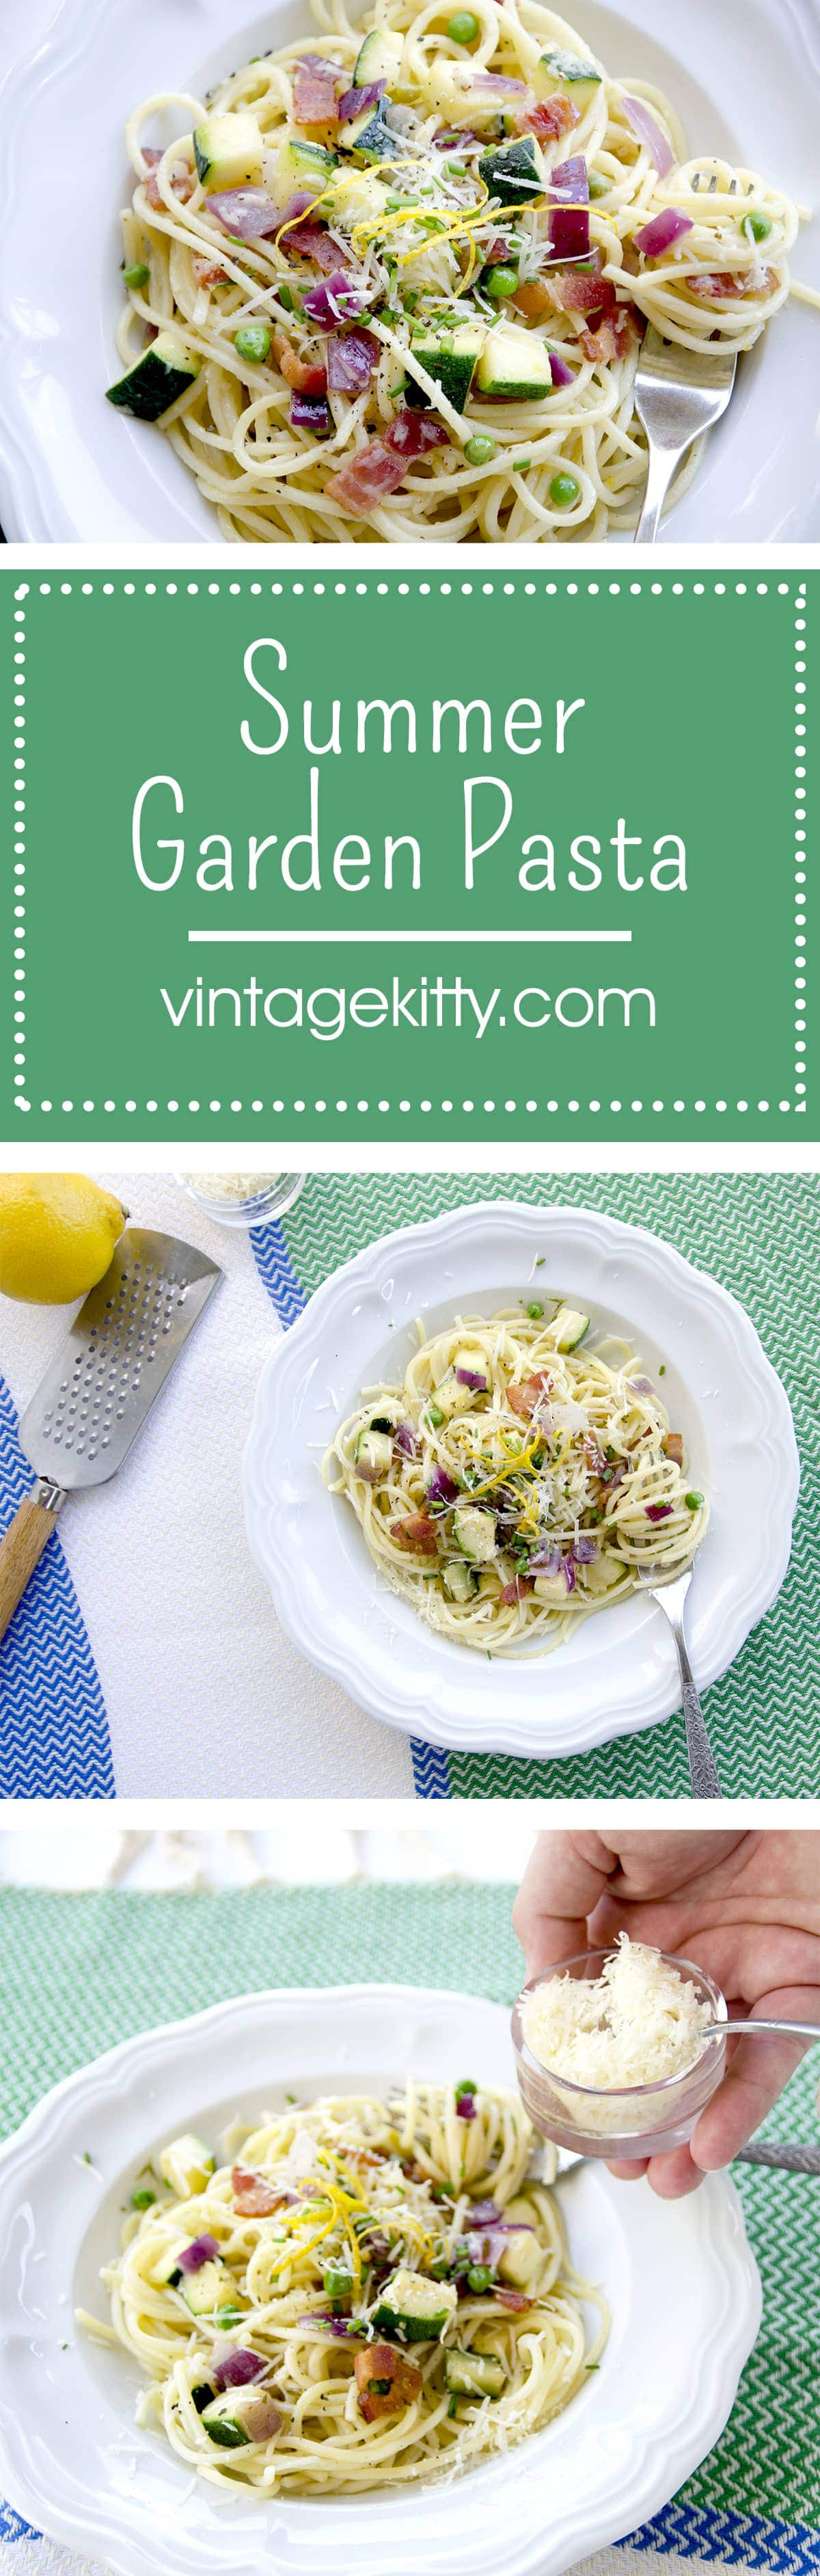 This easy Summer Garden Pasta is the perfect late summer, weeknight dinner. It's fresh, bright, savory and filling without being heavy. | vintagekitty.com